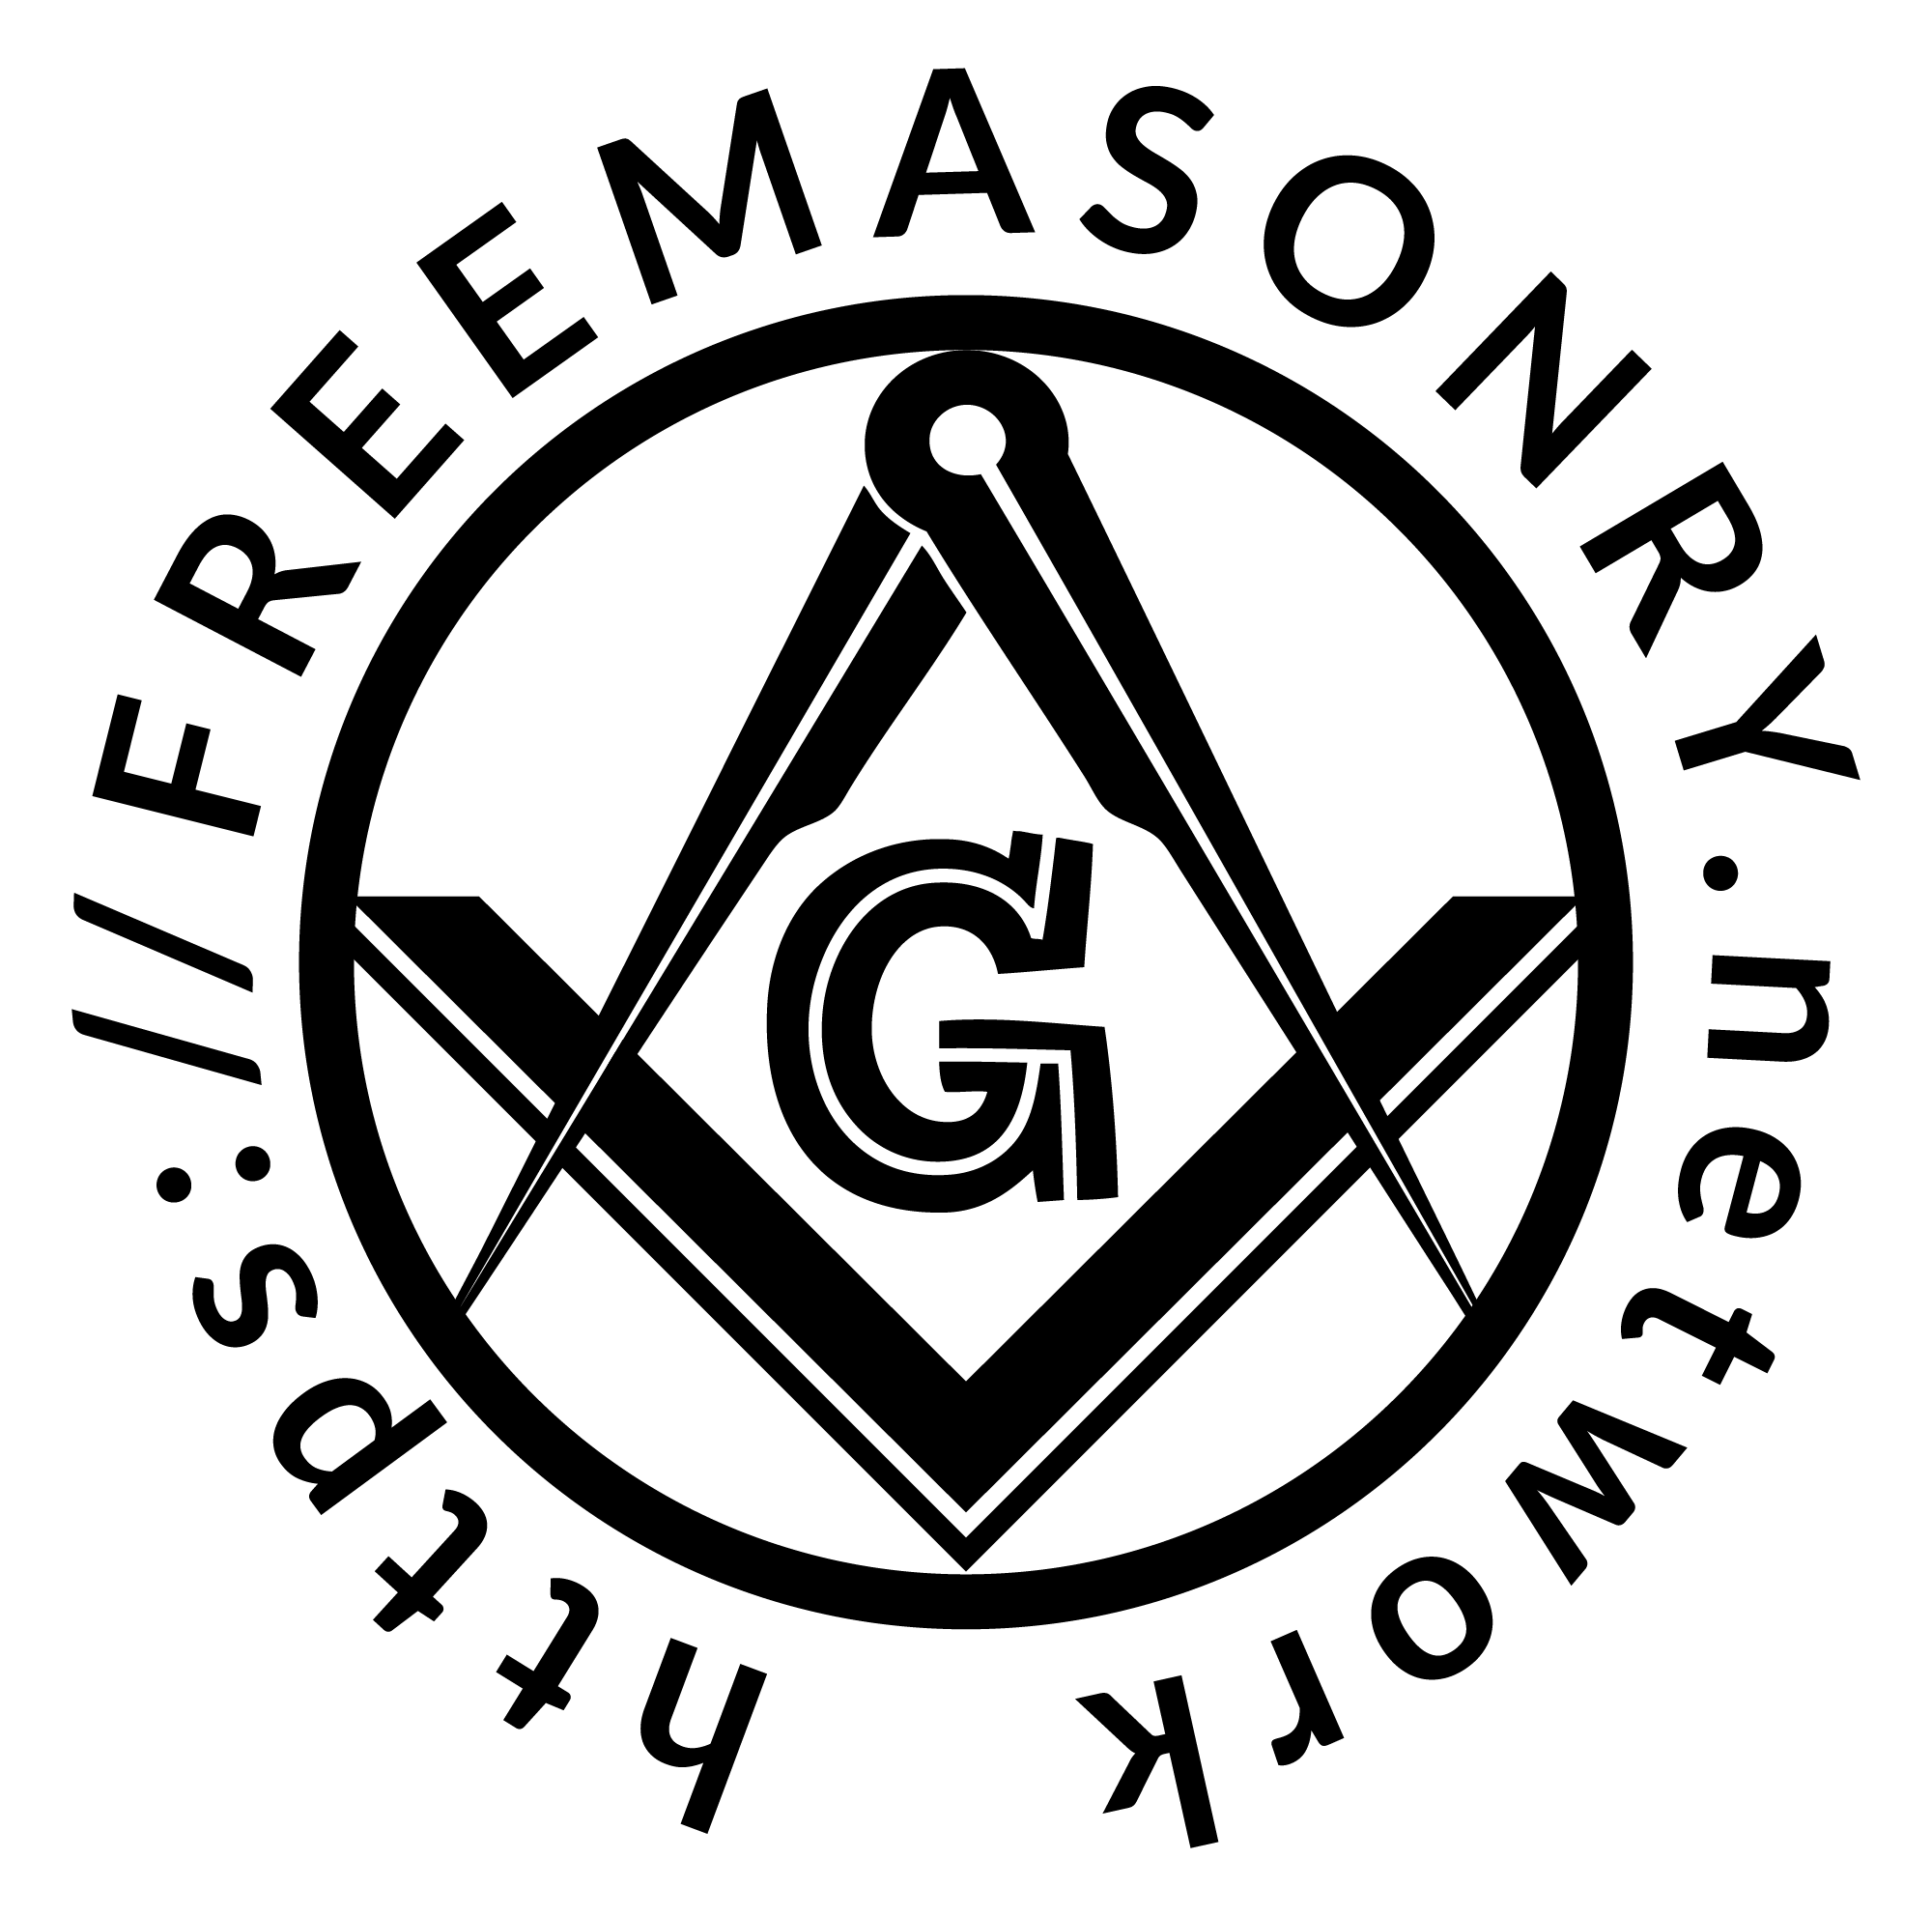 POLITICAL OPPOSITION AGAINST FREEMASONRY